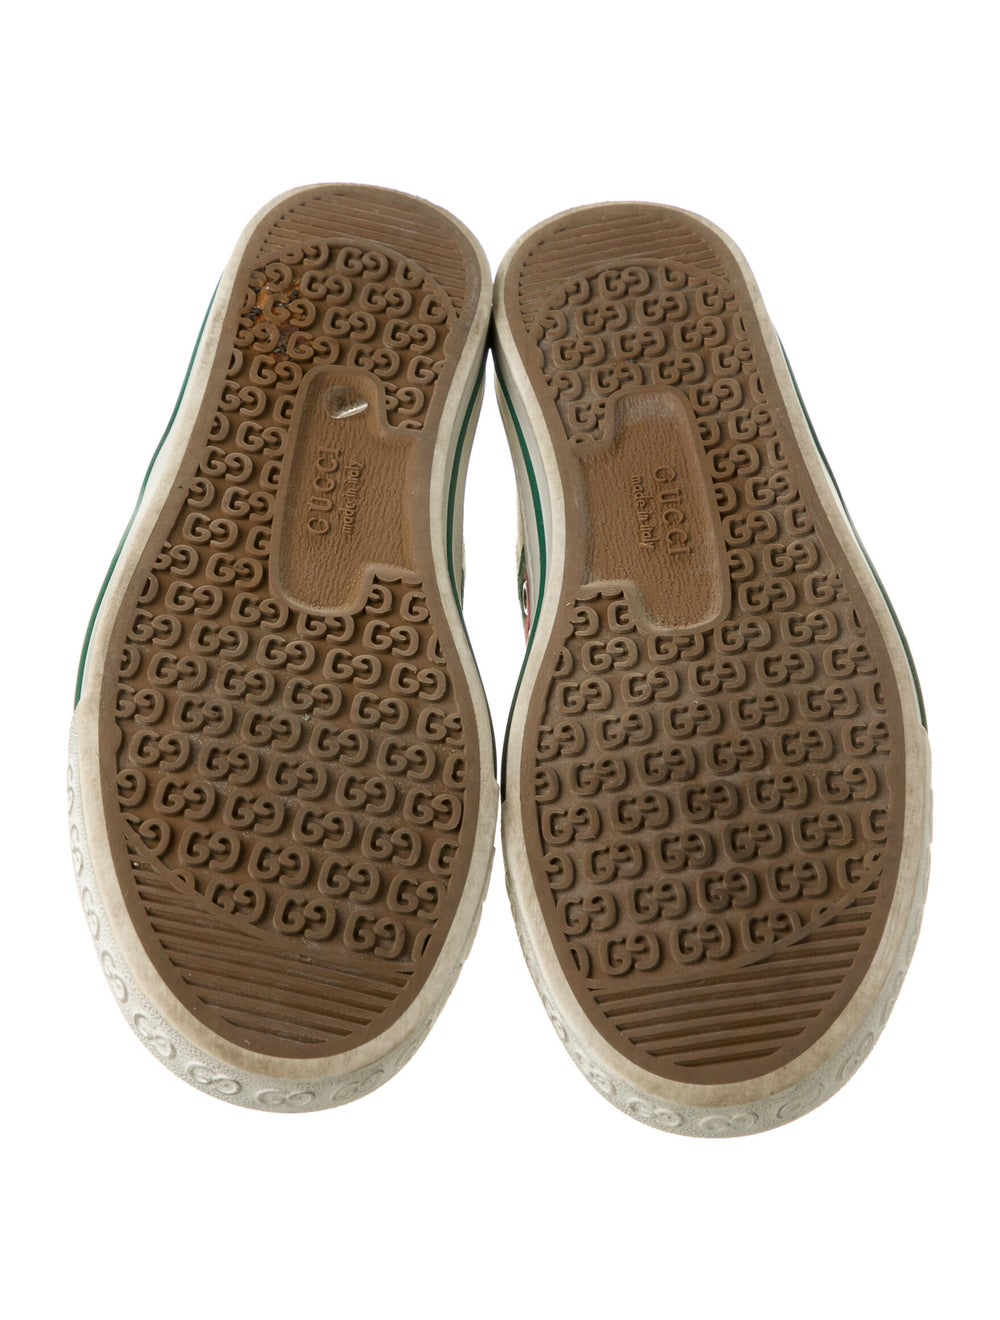 Gucci 1977 Tennis Sneakers - image 5